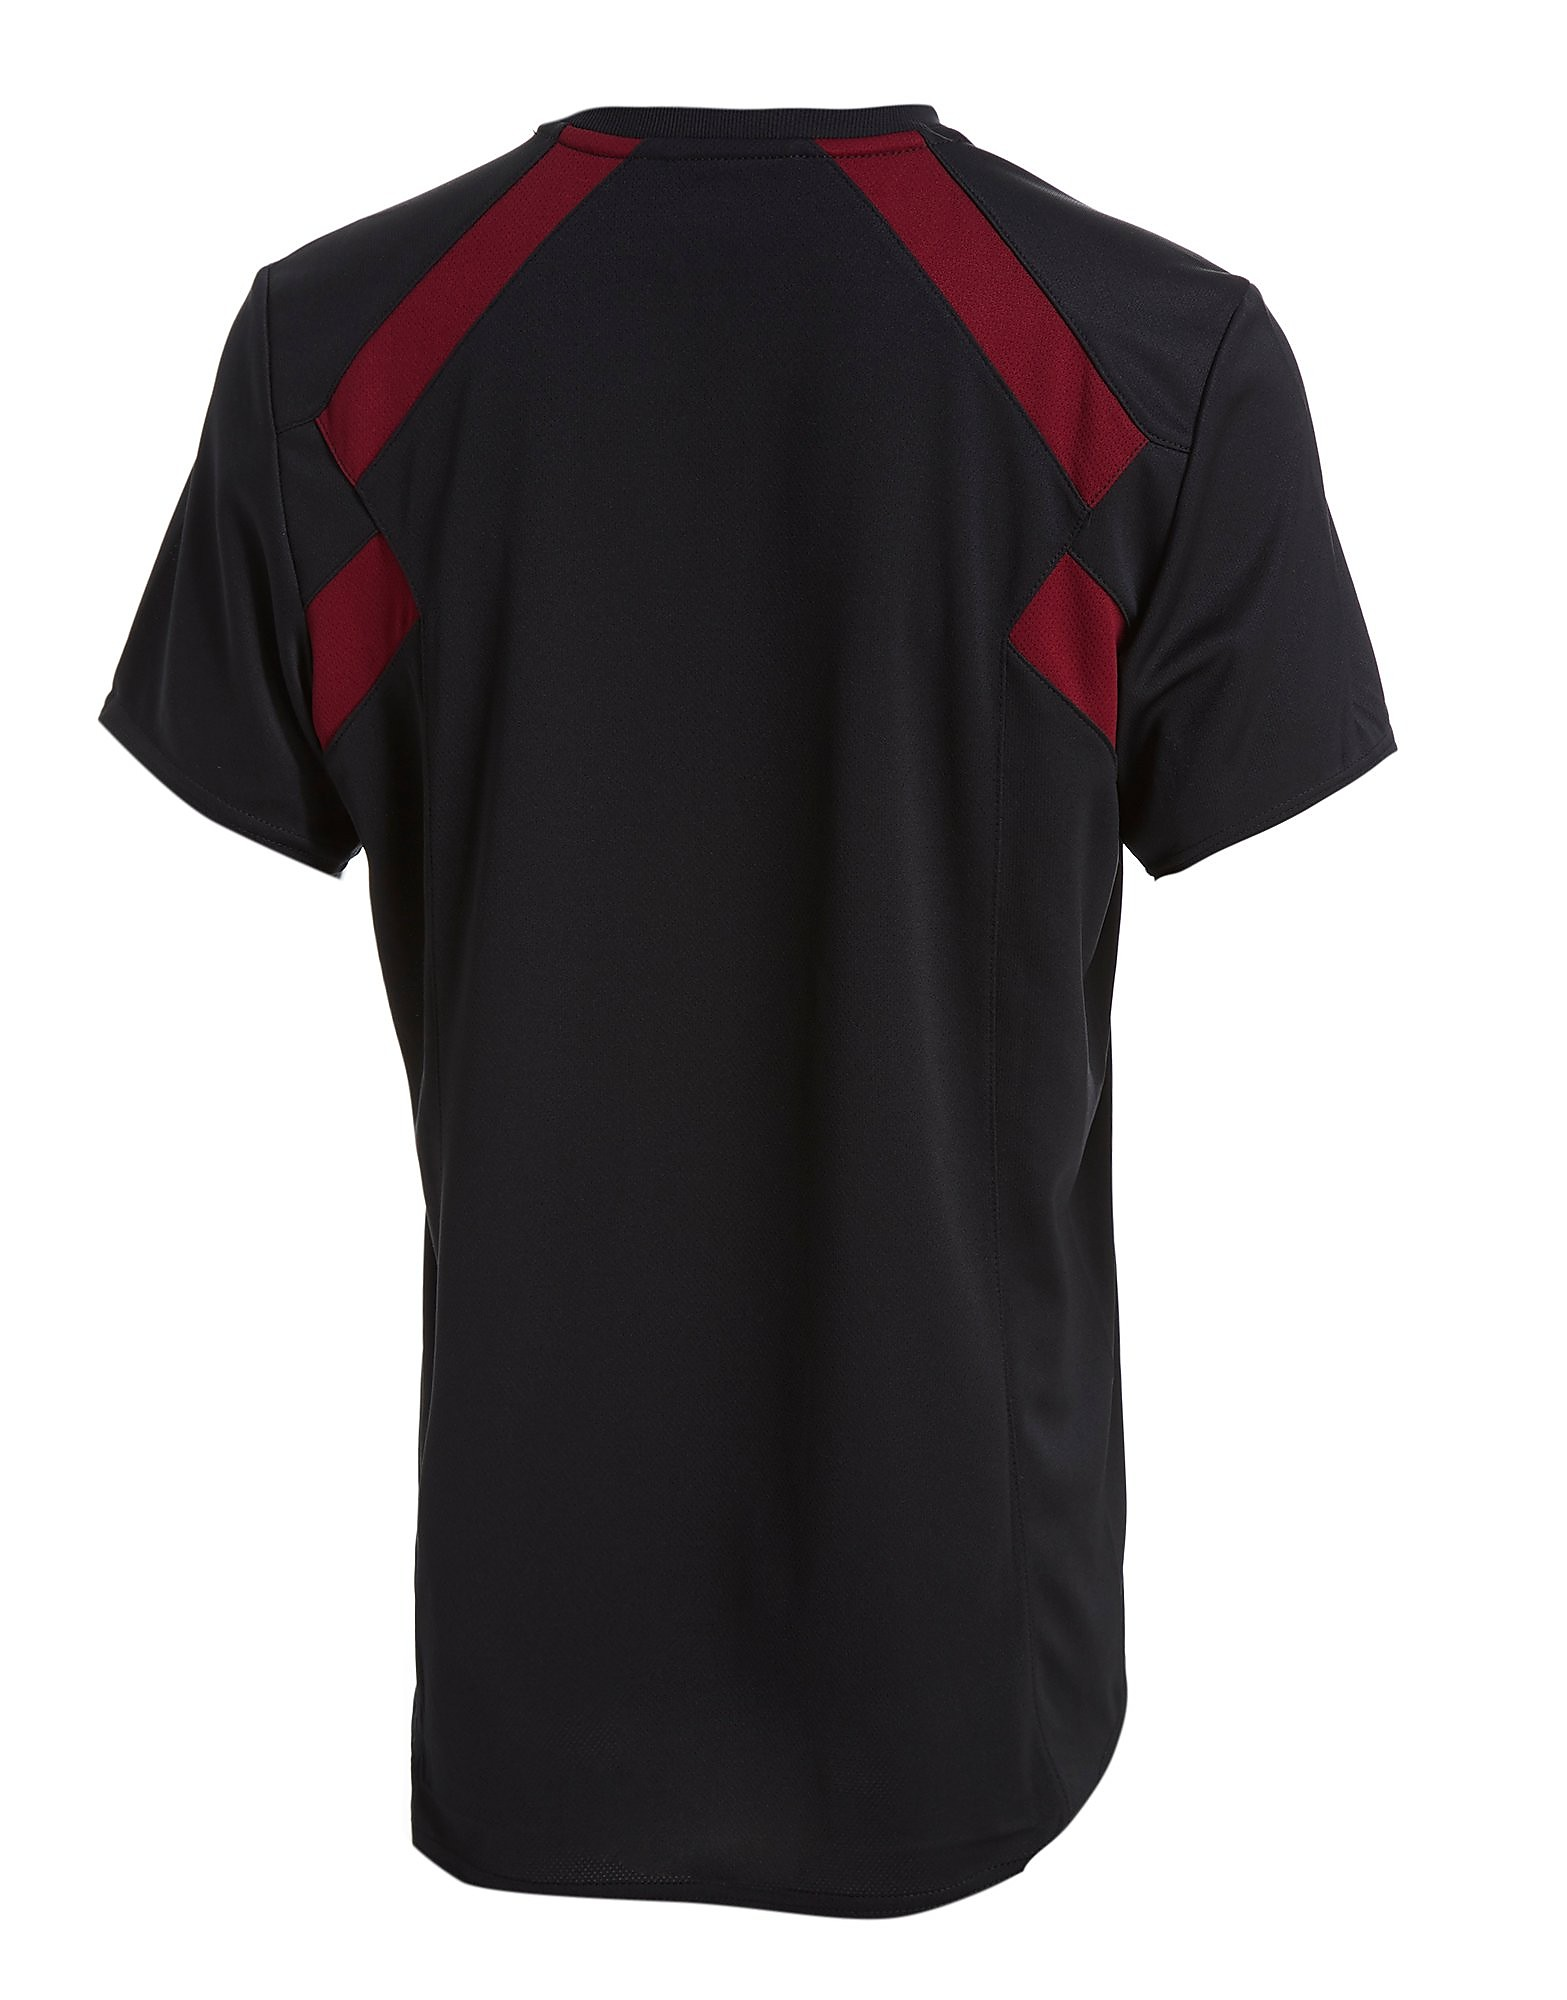 Umbro West Ham United Training Shirt Junior